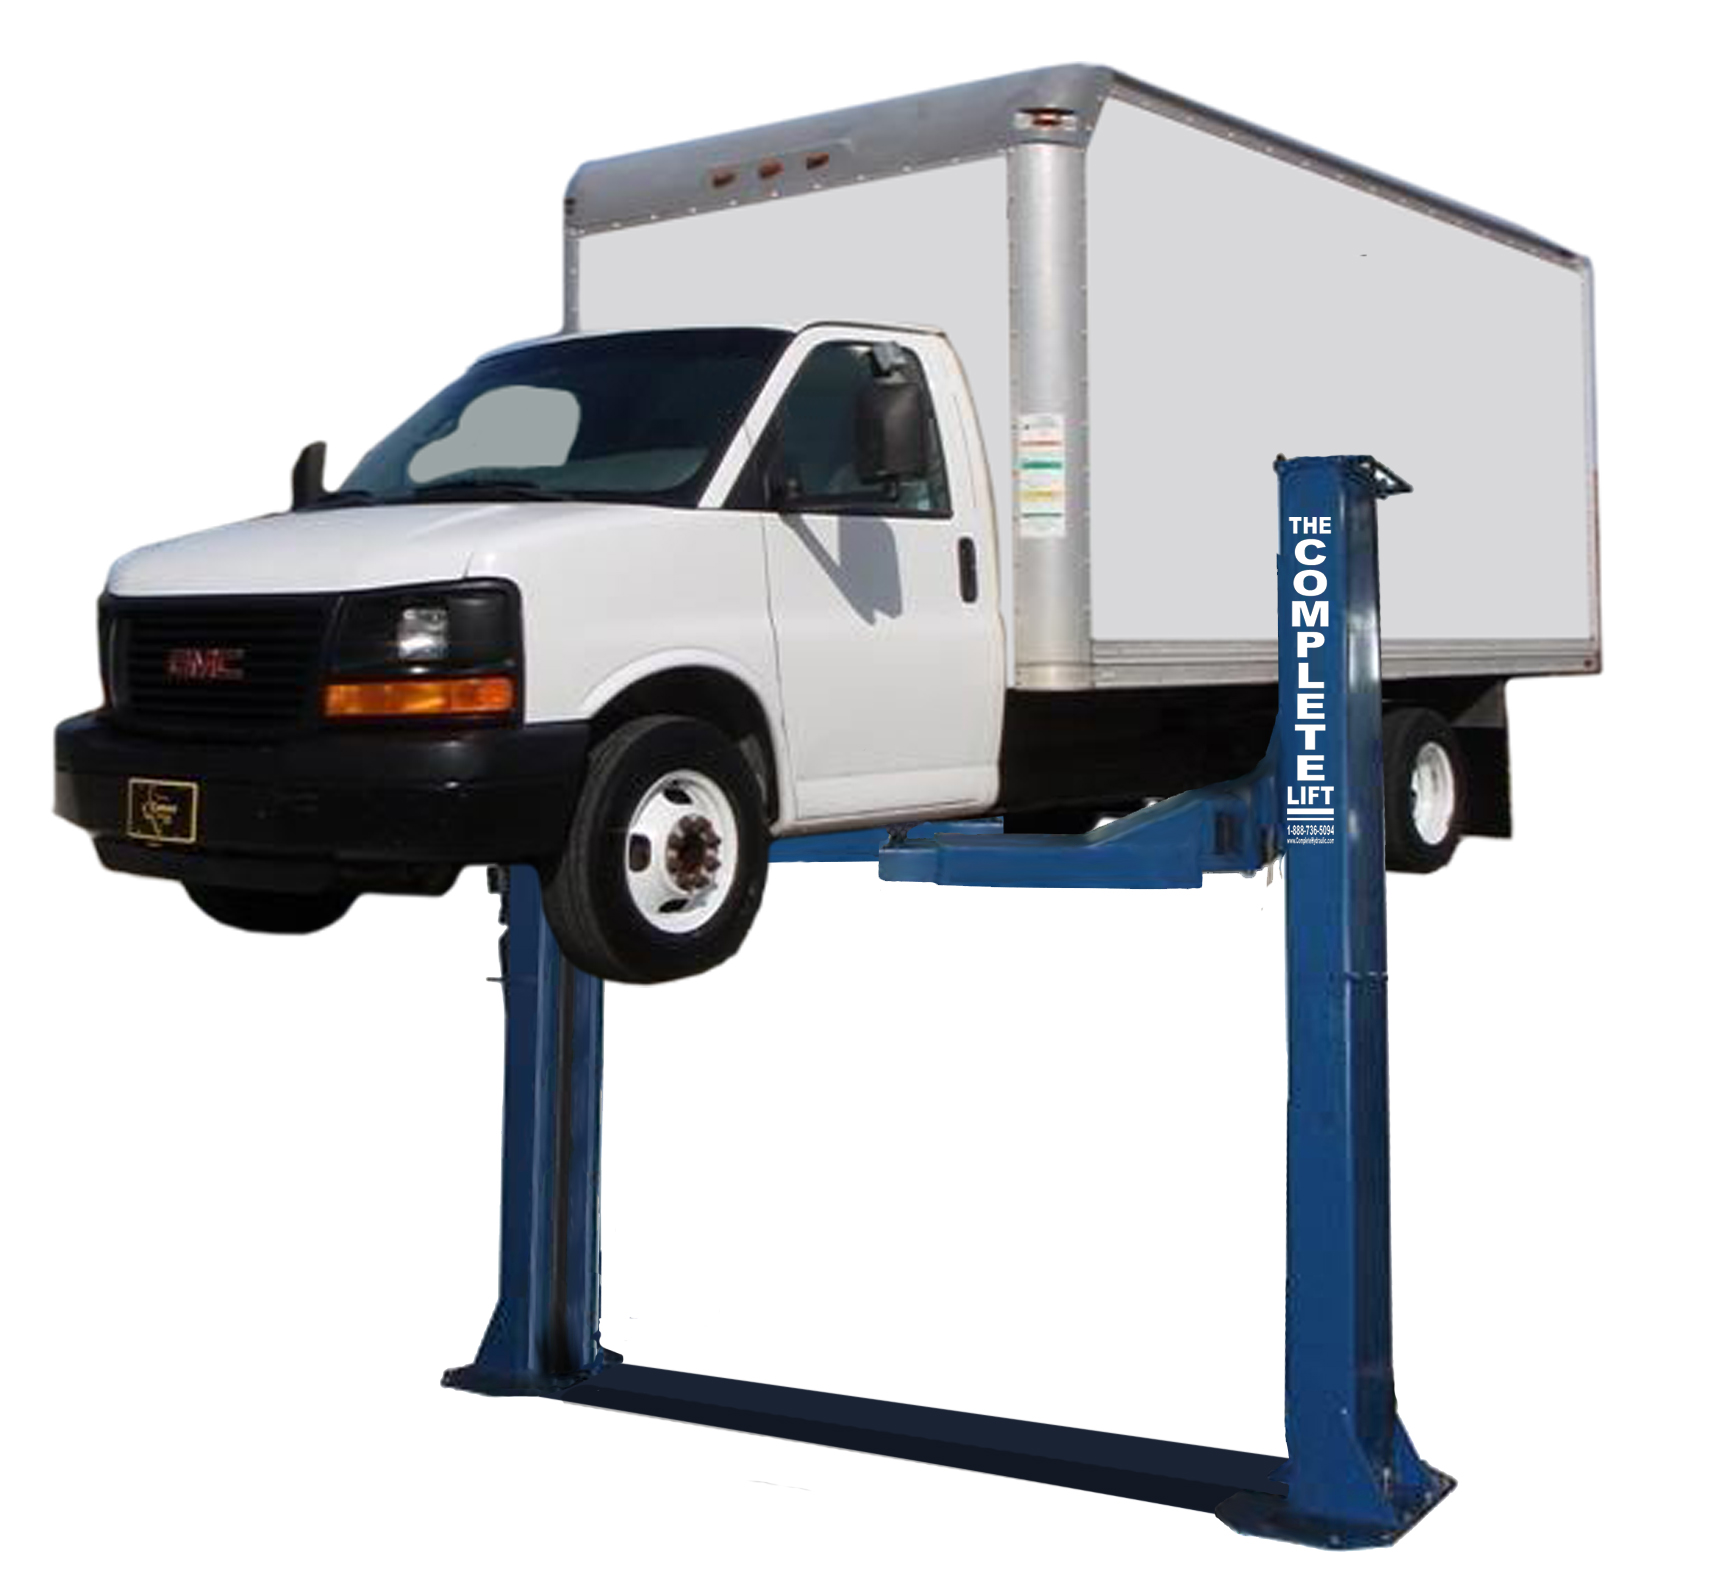 Clt 15 000 bp 2 post automotive lift